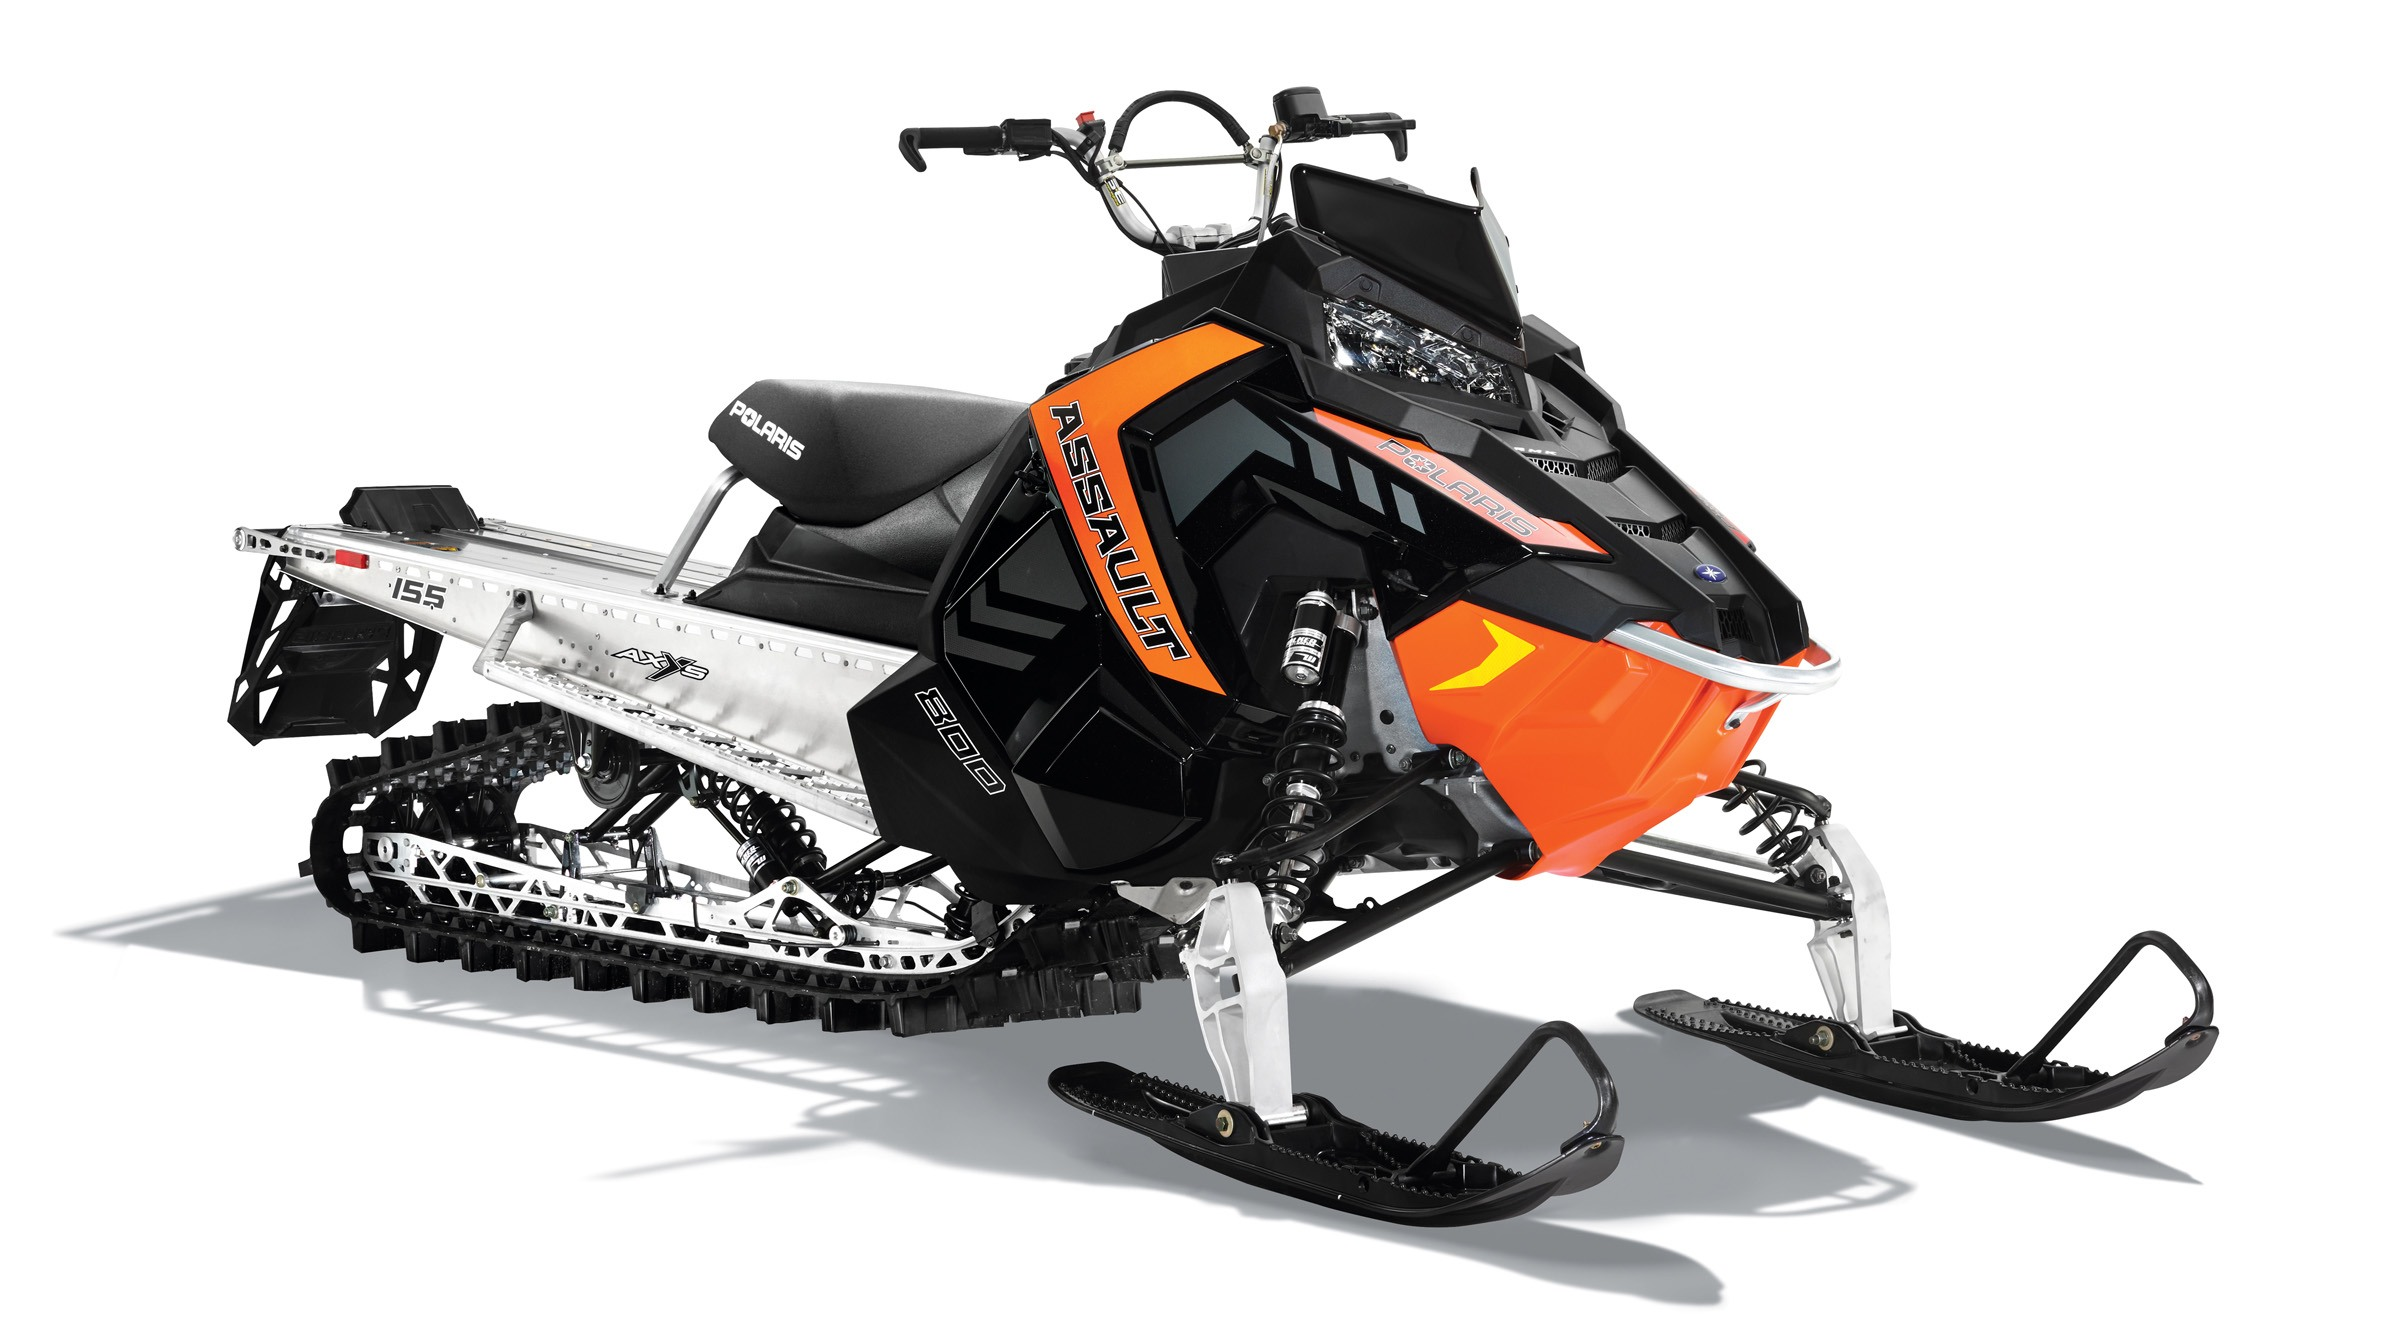 2016 Polaris 800 RMK Assault 155 Powder ES in Lake Mills, Iowa - Photo 1